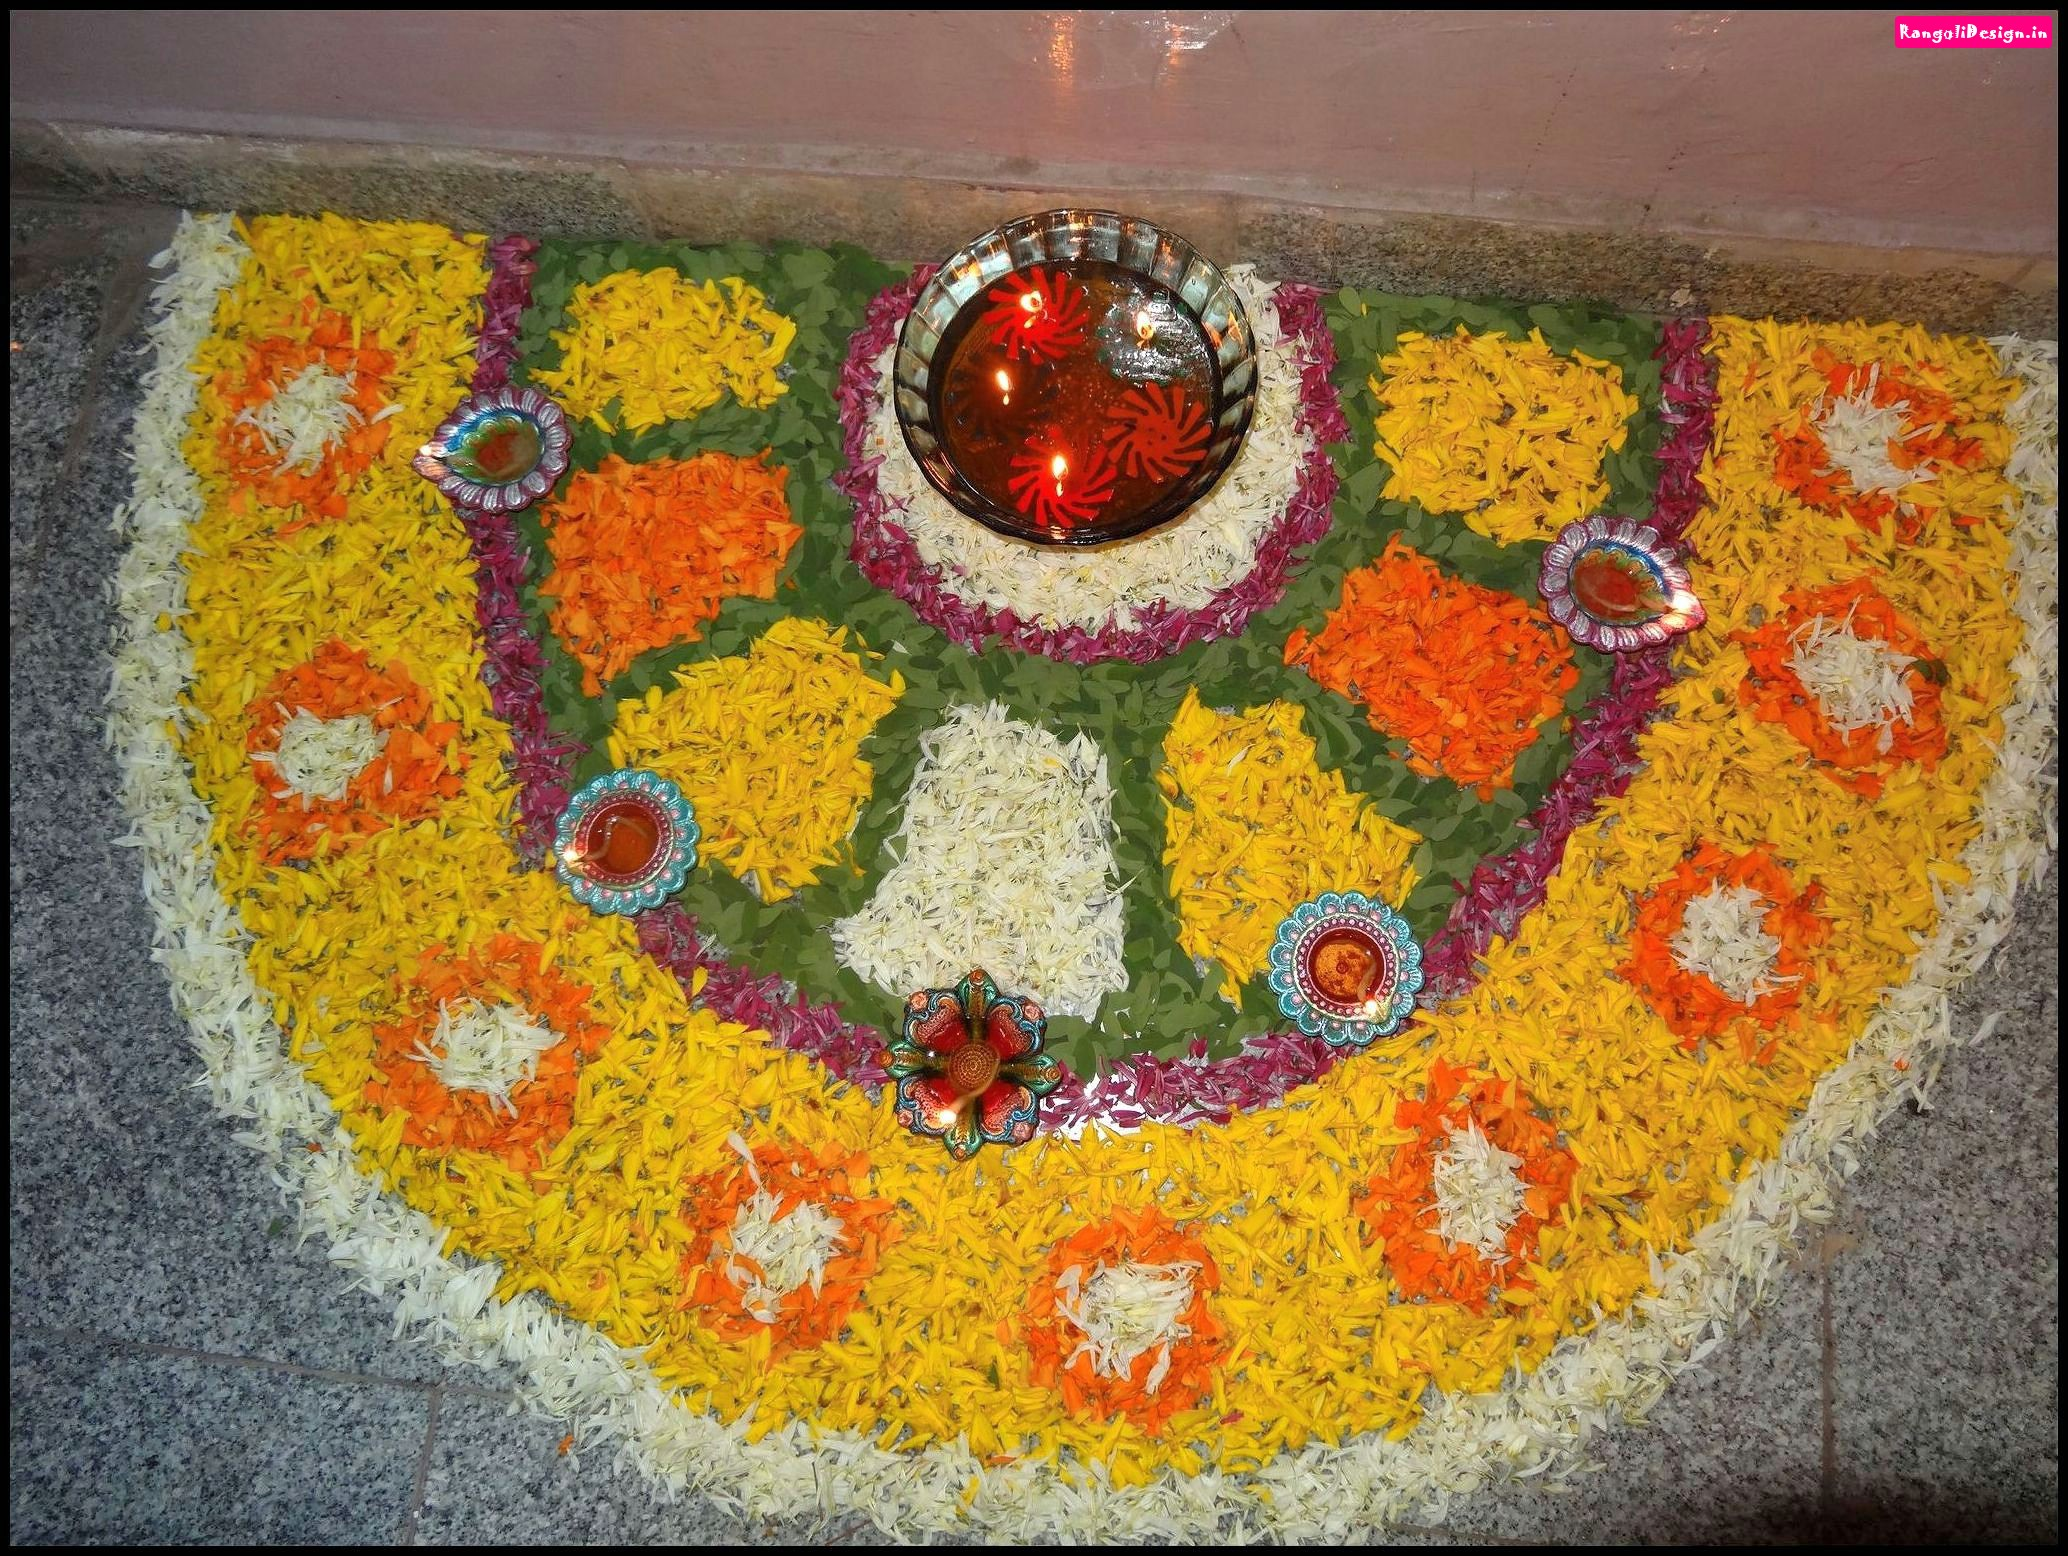 athapookalam-amazing-corner-designs-1_perfectlyclear